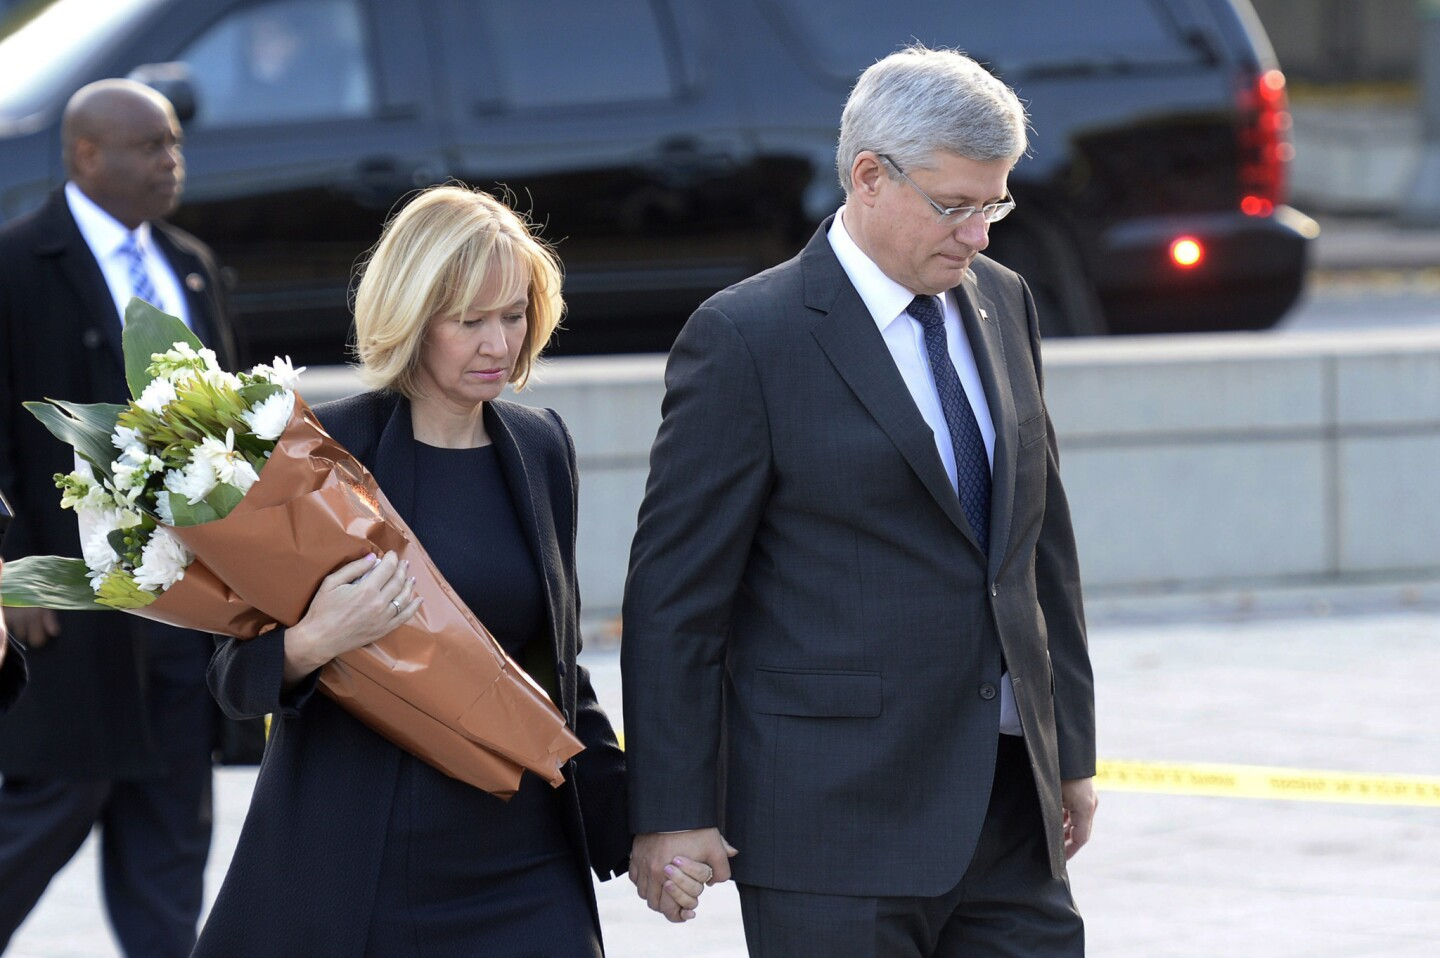 Prime Minister Stephen Harper and his wife, Laureen, visit Canada's Tomb of the Unknown Soldier in Ottawa on Oct. 23, the day after Cpl. Nathan Cirillo was killed by a gunman.